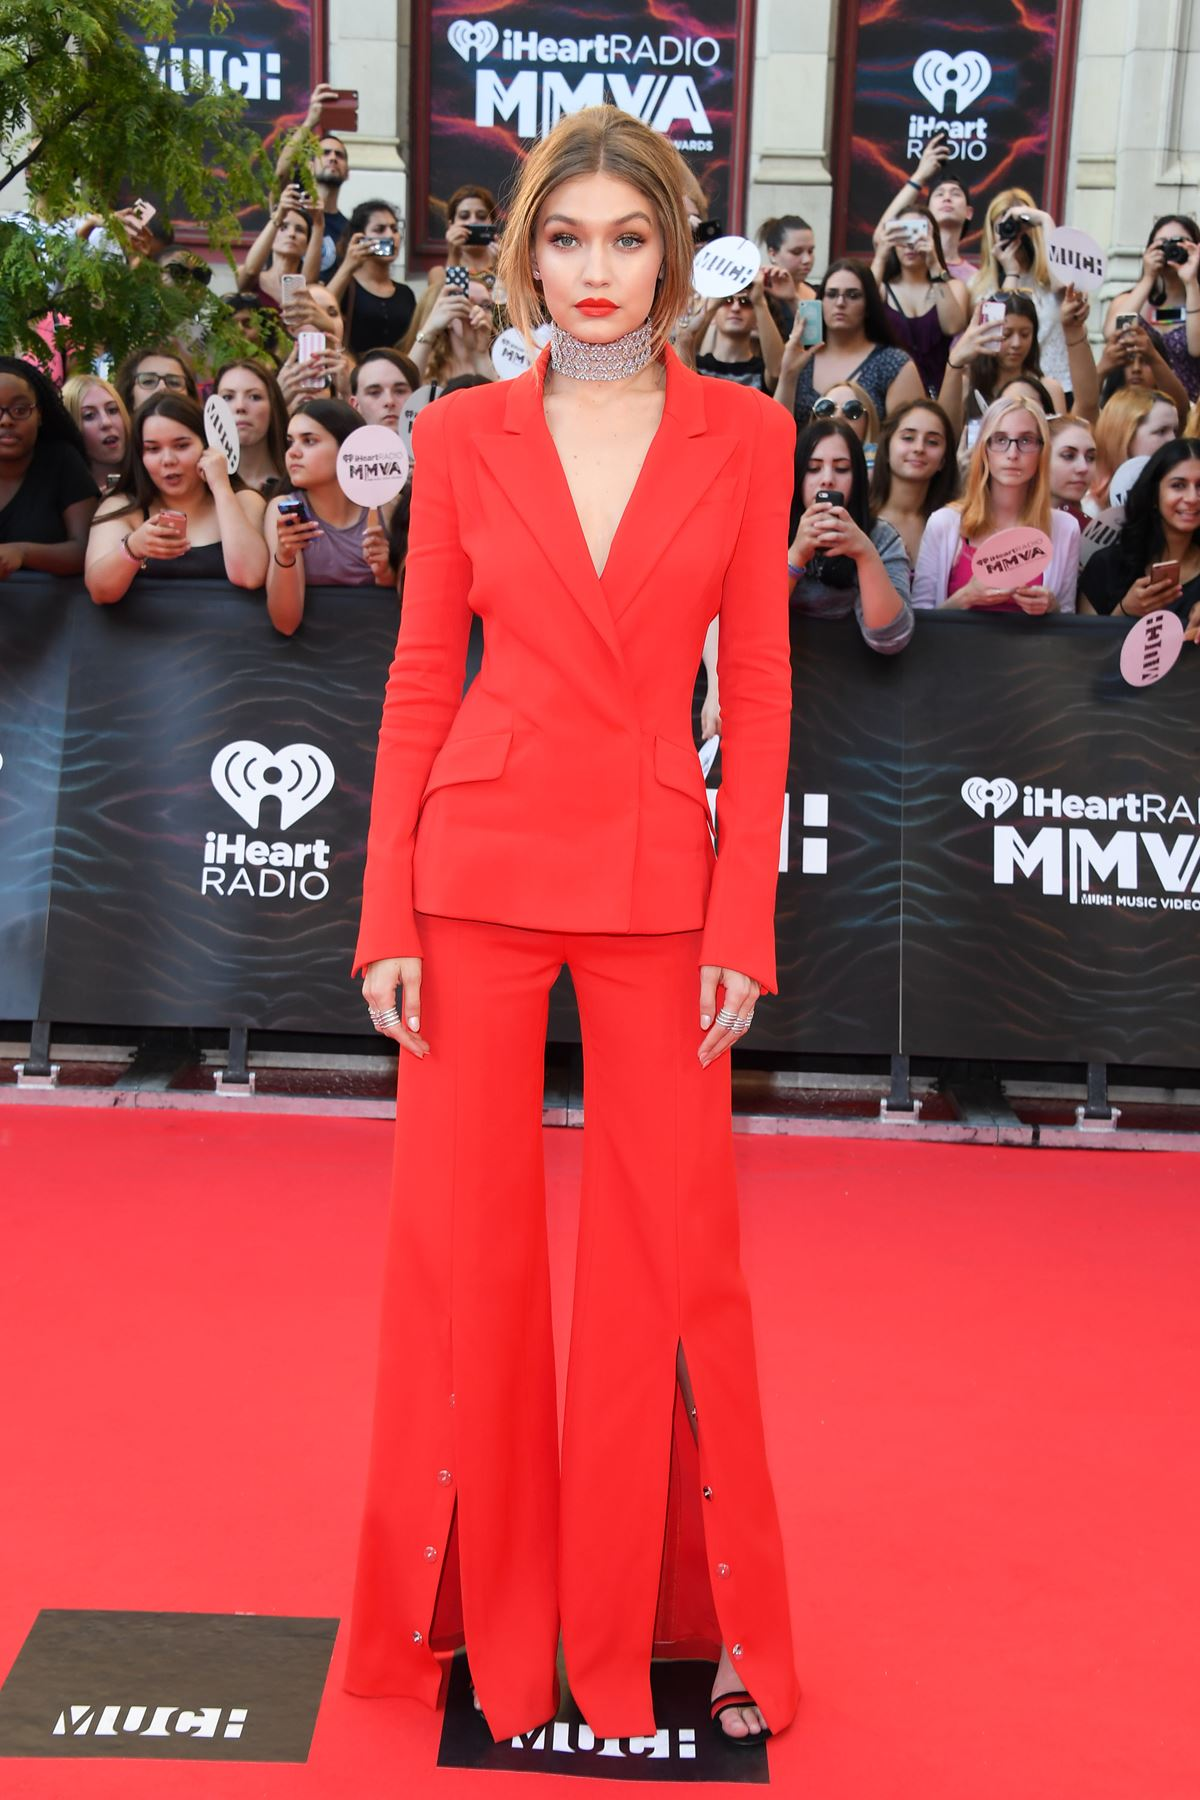 Host kween Gigi Hadid had it ALL going on in this epic red power suit.